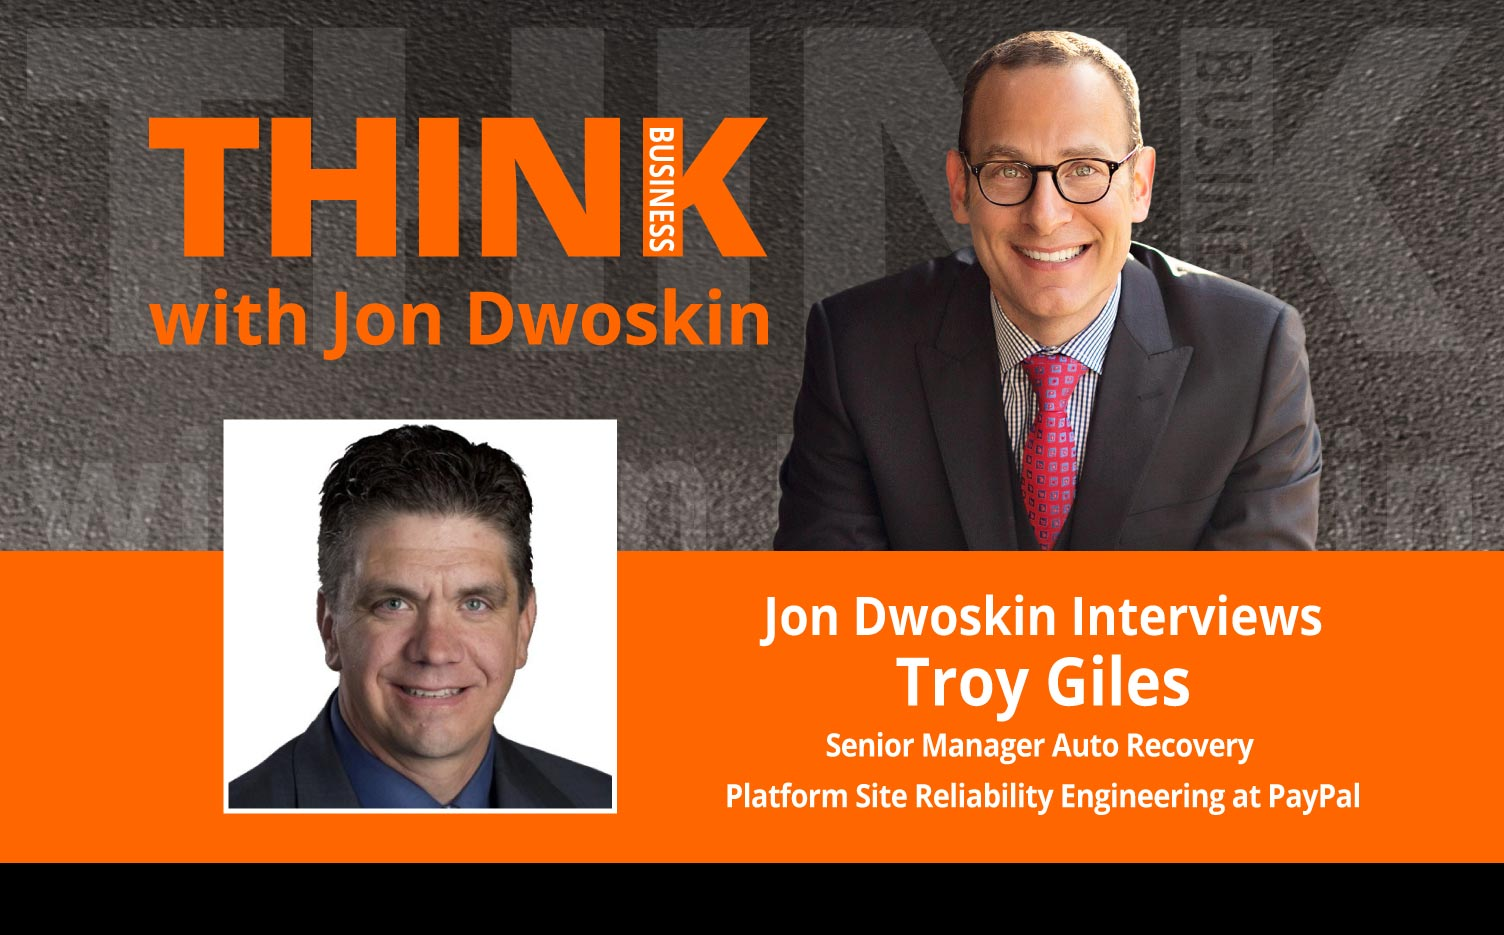 Jon Dwoskin Interviews Troy Giles